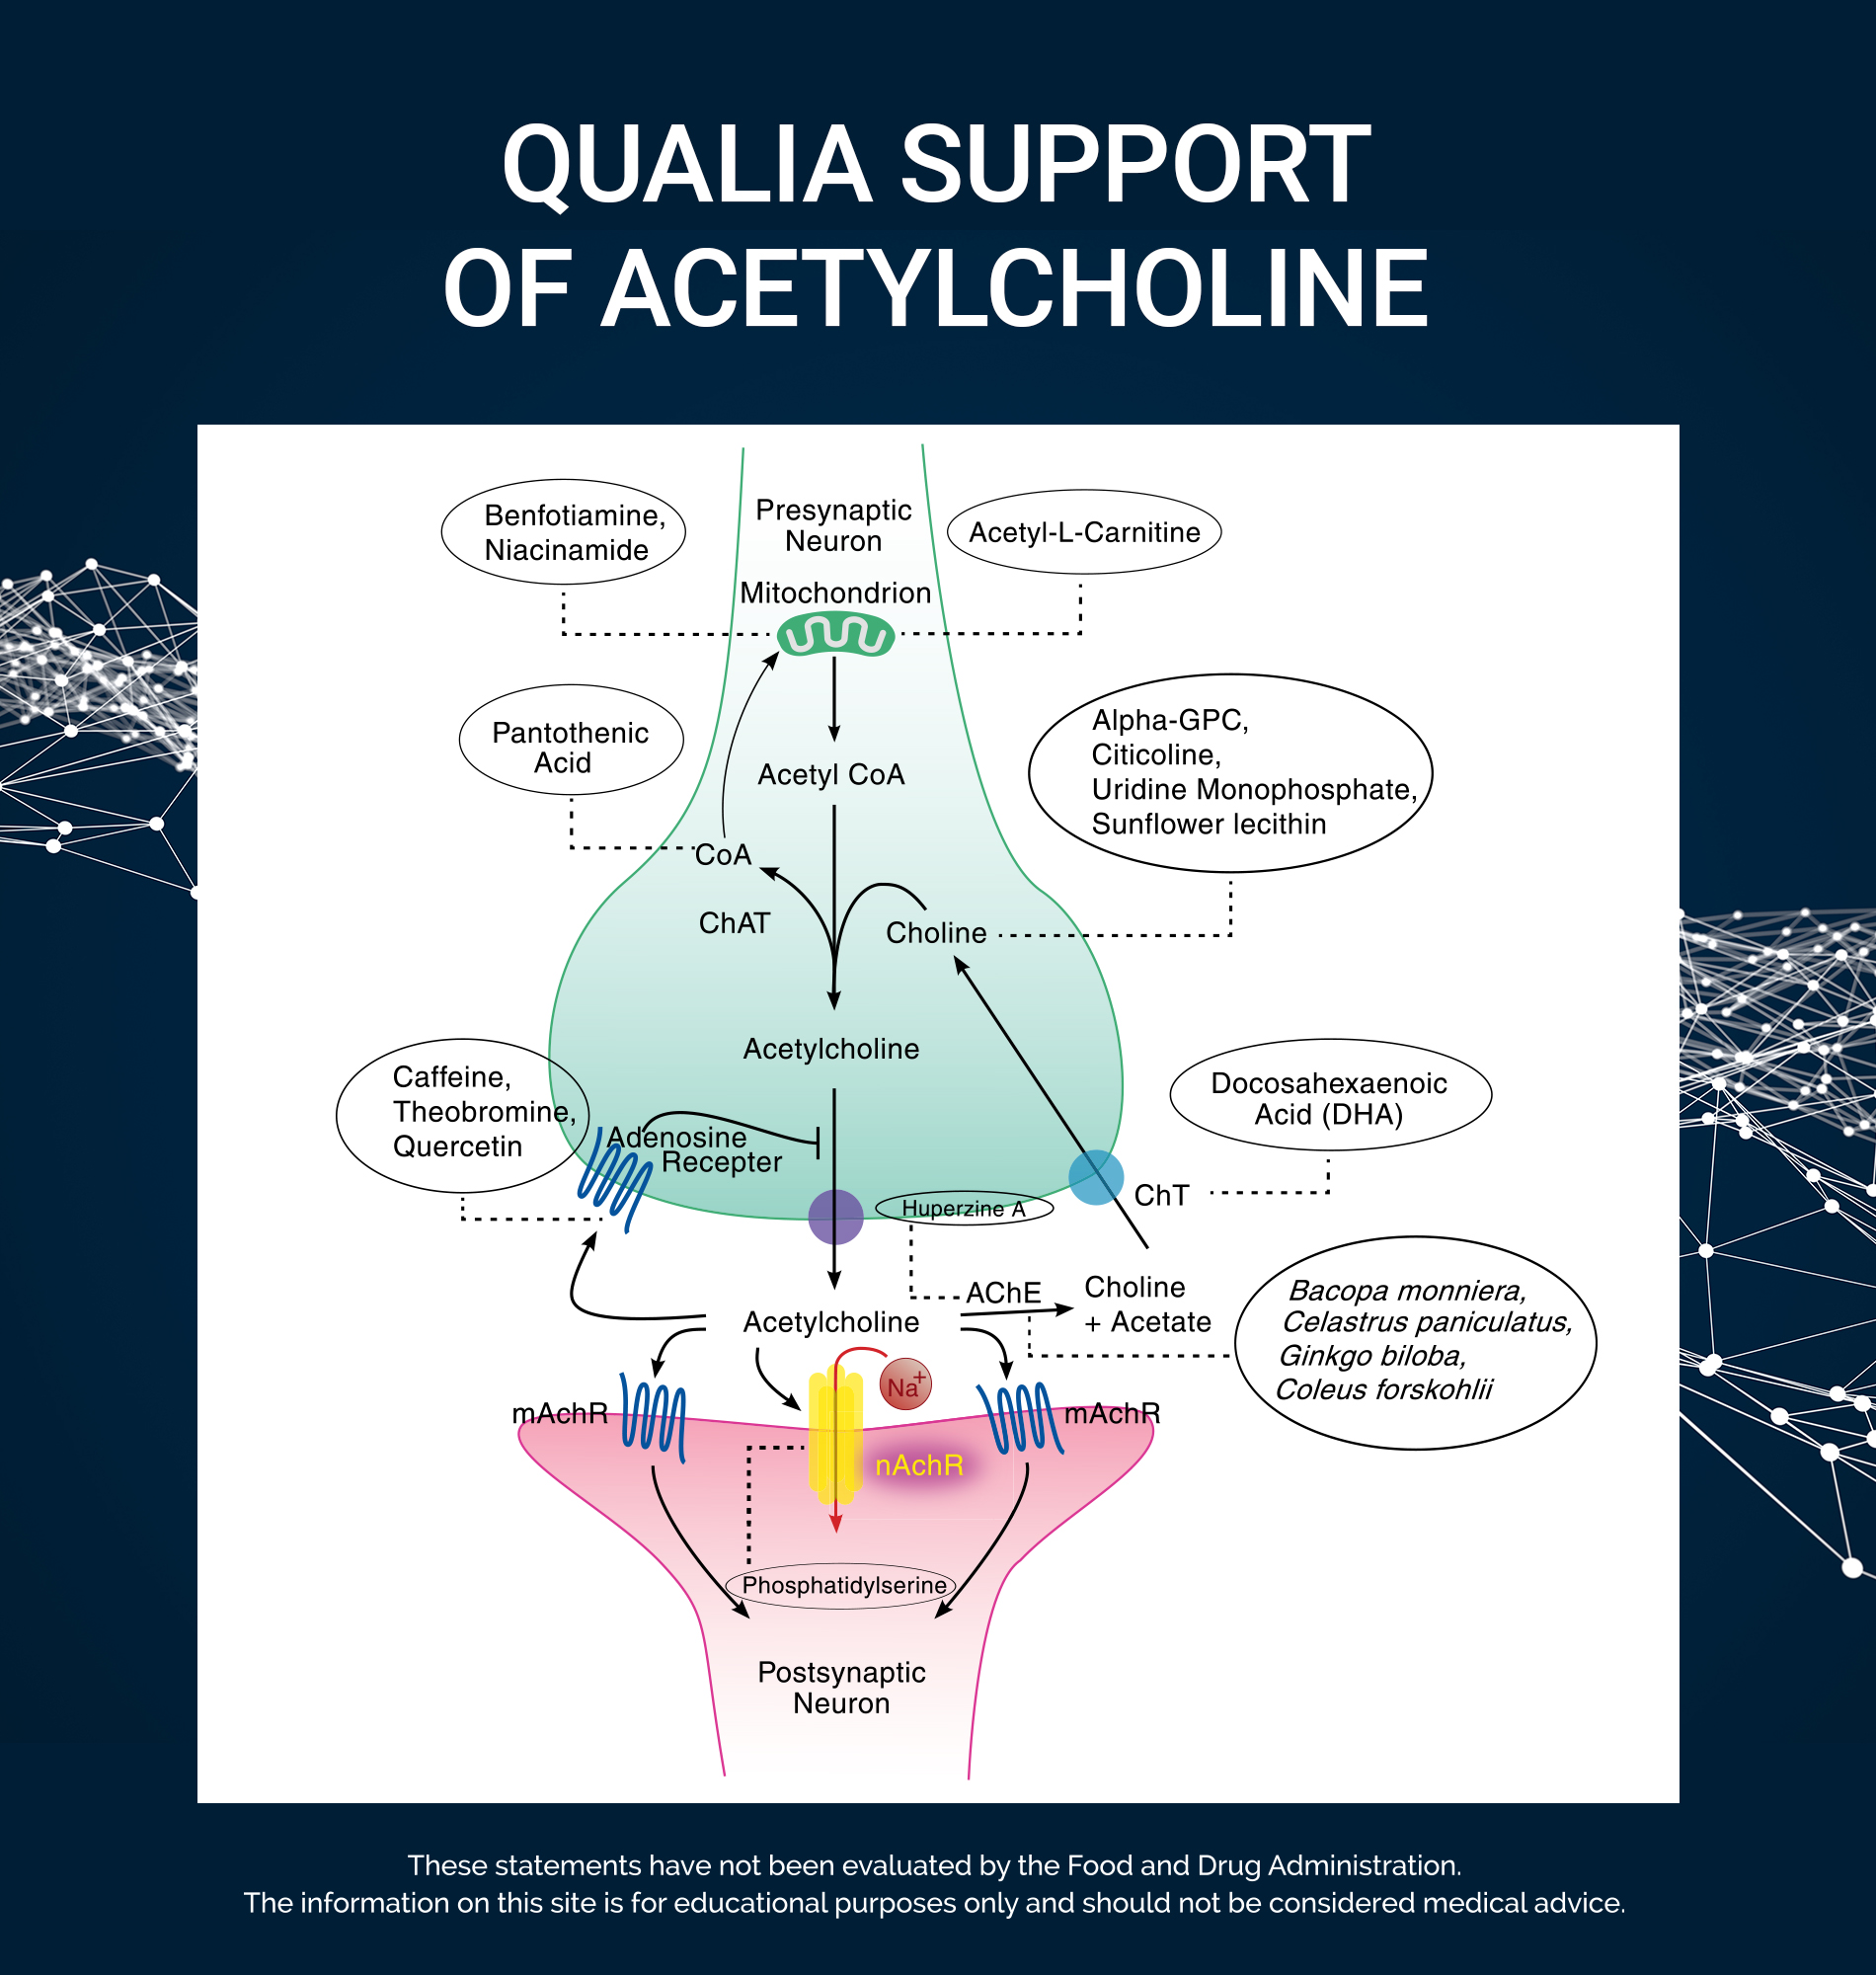 Qualia's Support of Acetylcholine